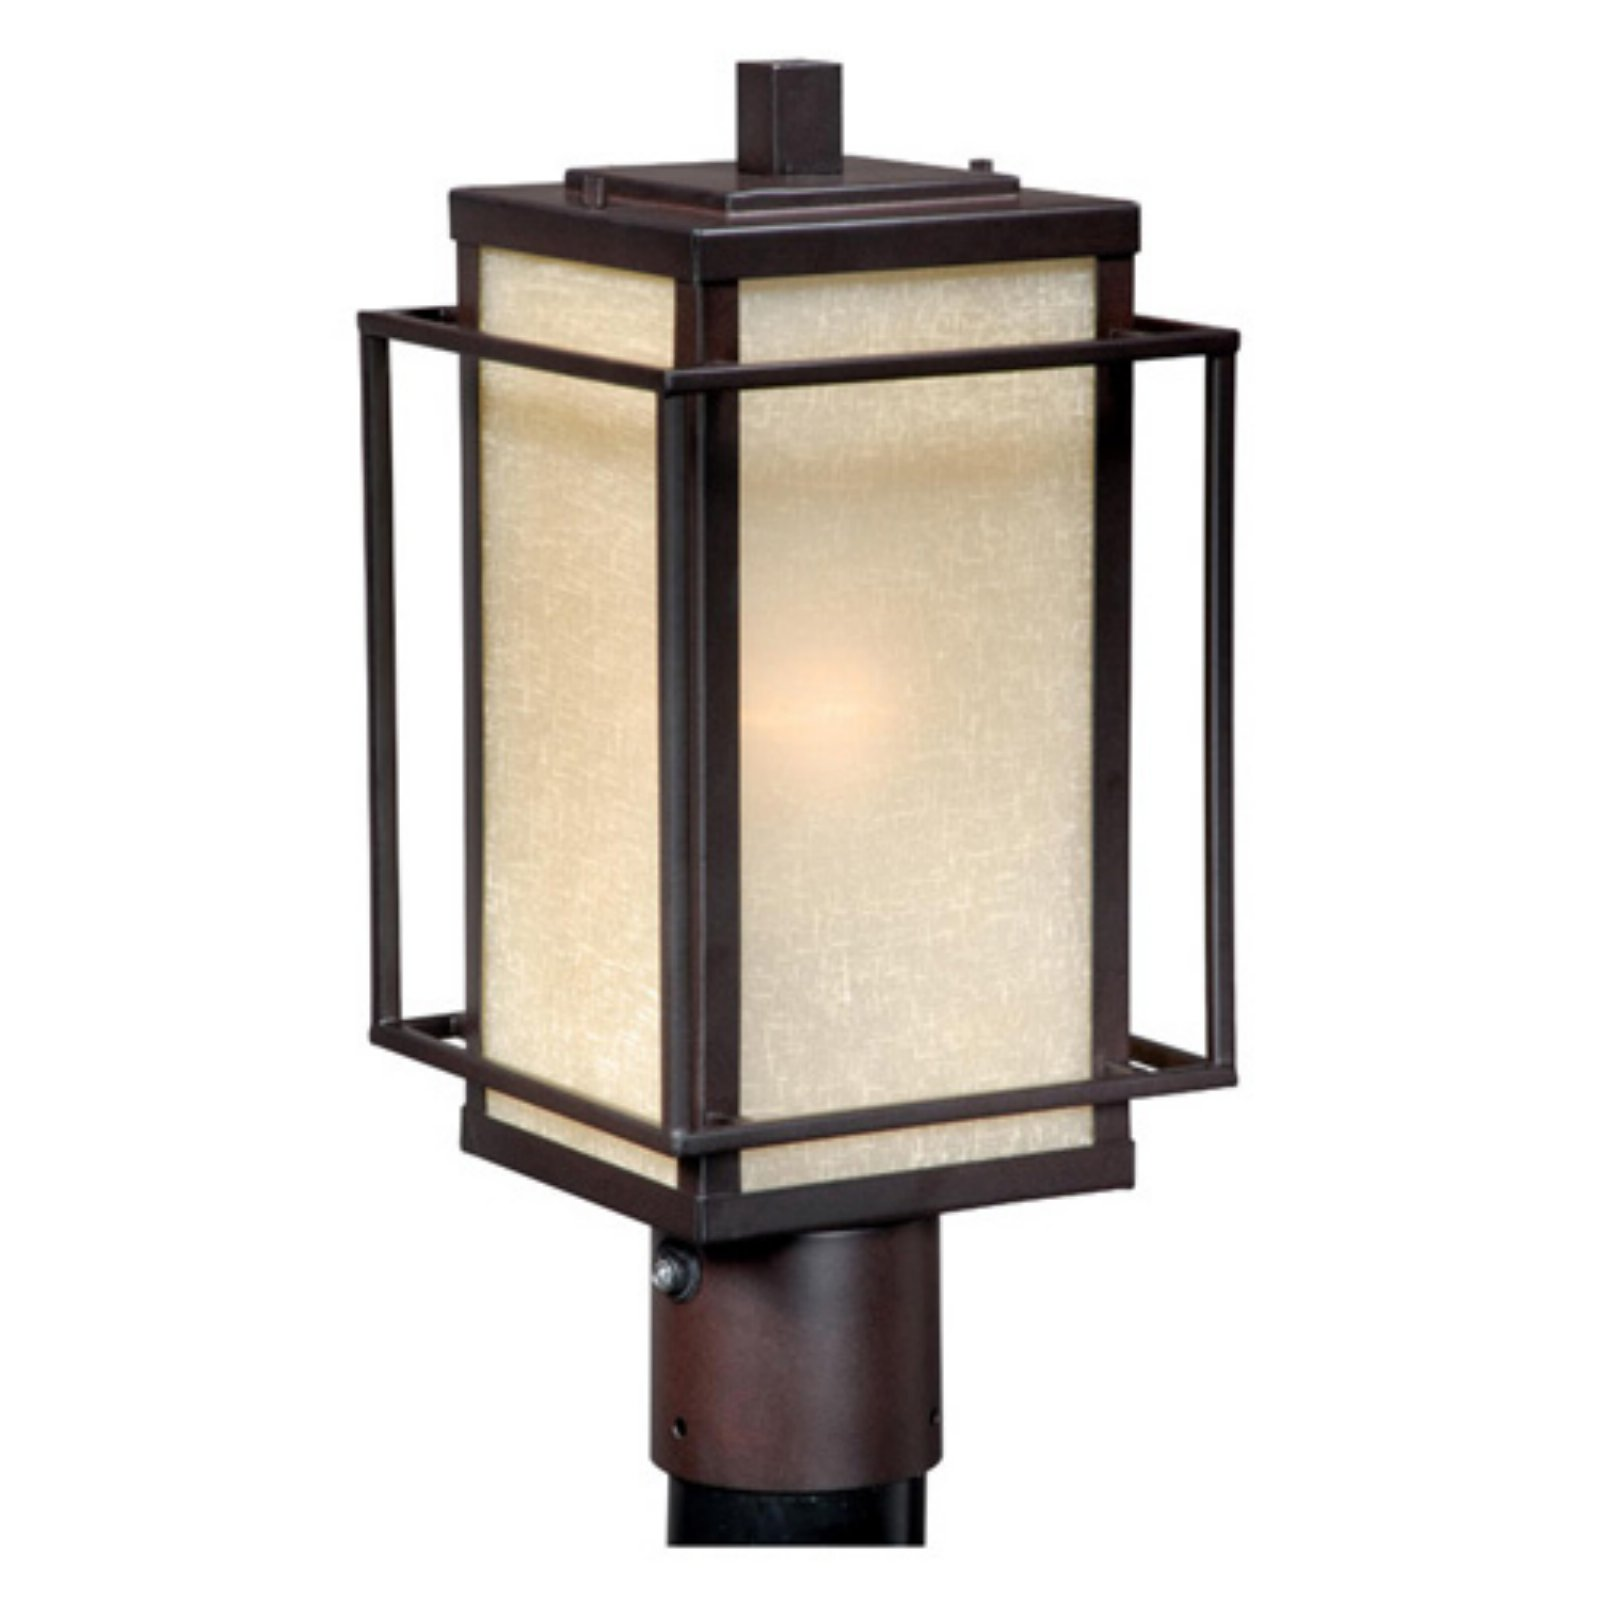 Vaxcel Robie Outdoor Post Light - 7.12W in. Espresso Bronze